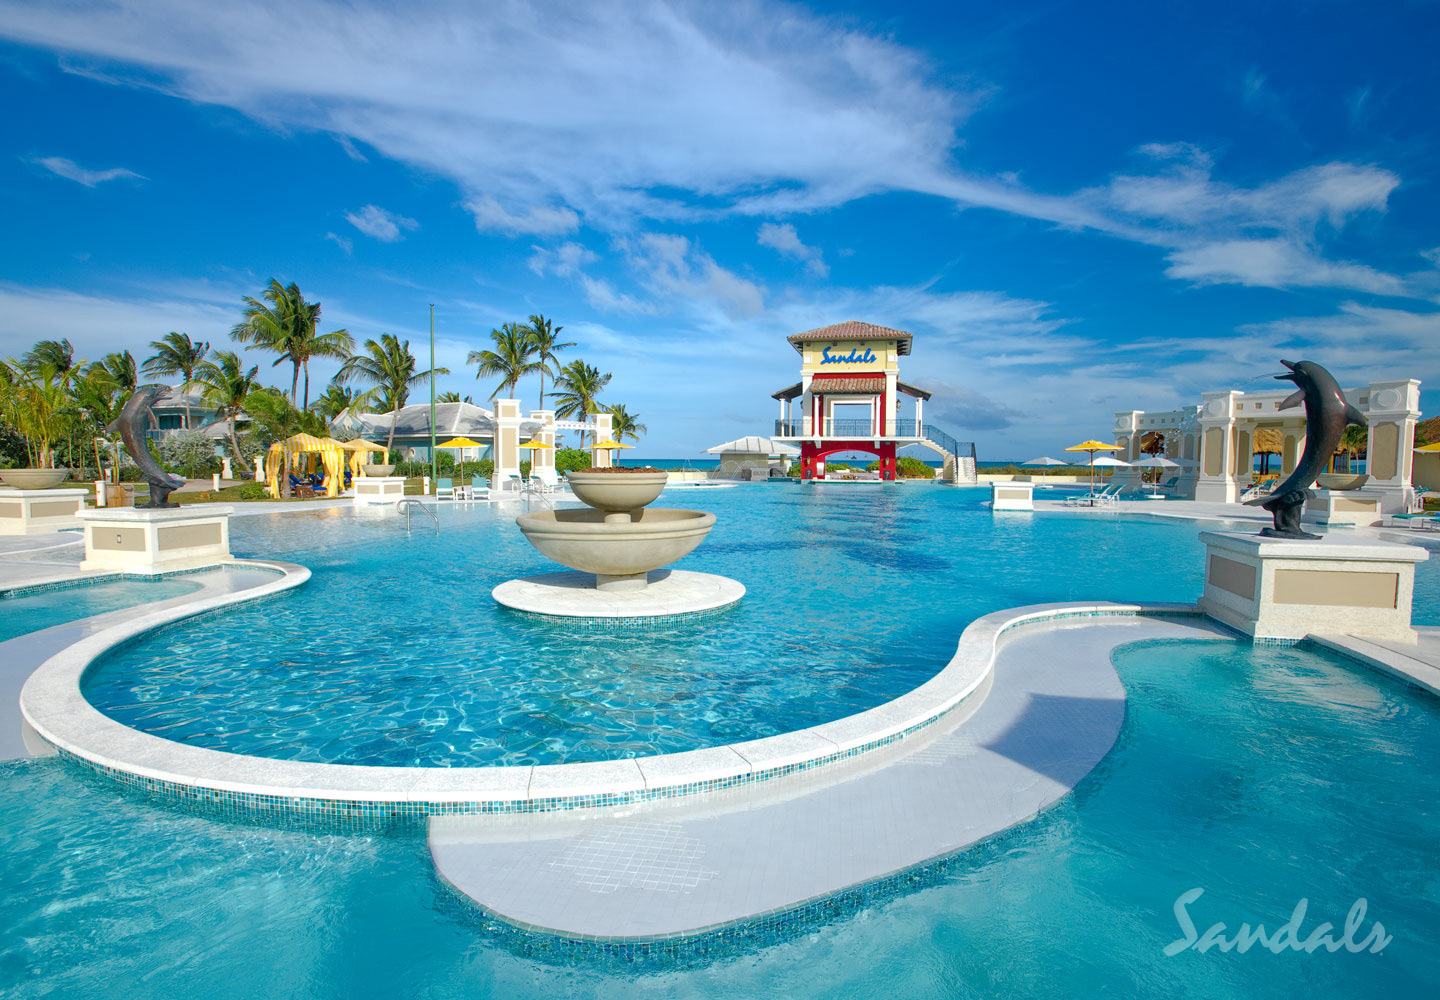 Travel Agency All-Inclusive Resort Sandals Emerald Bay 095